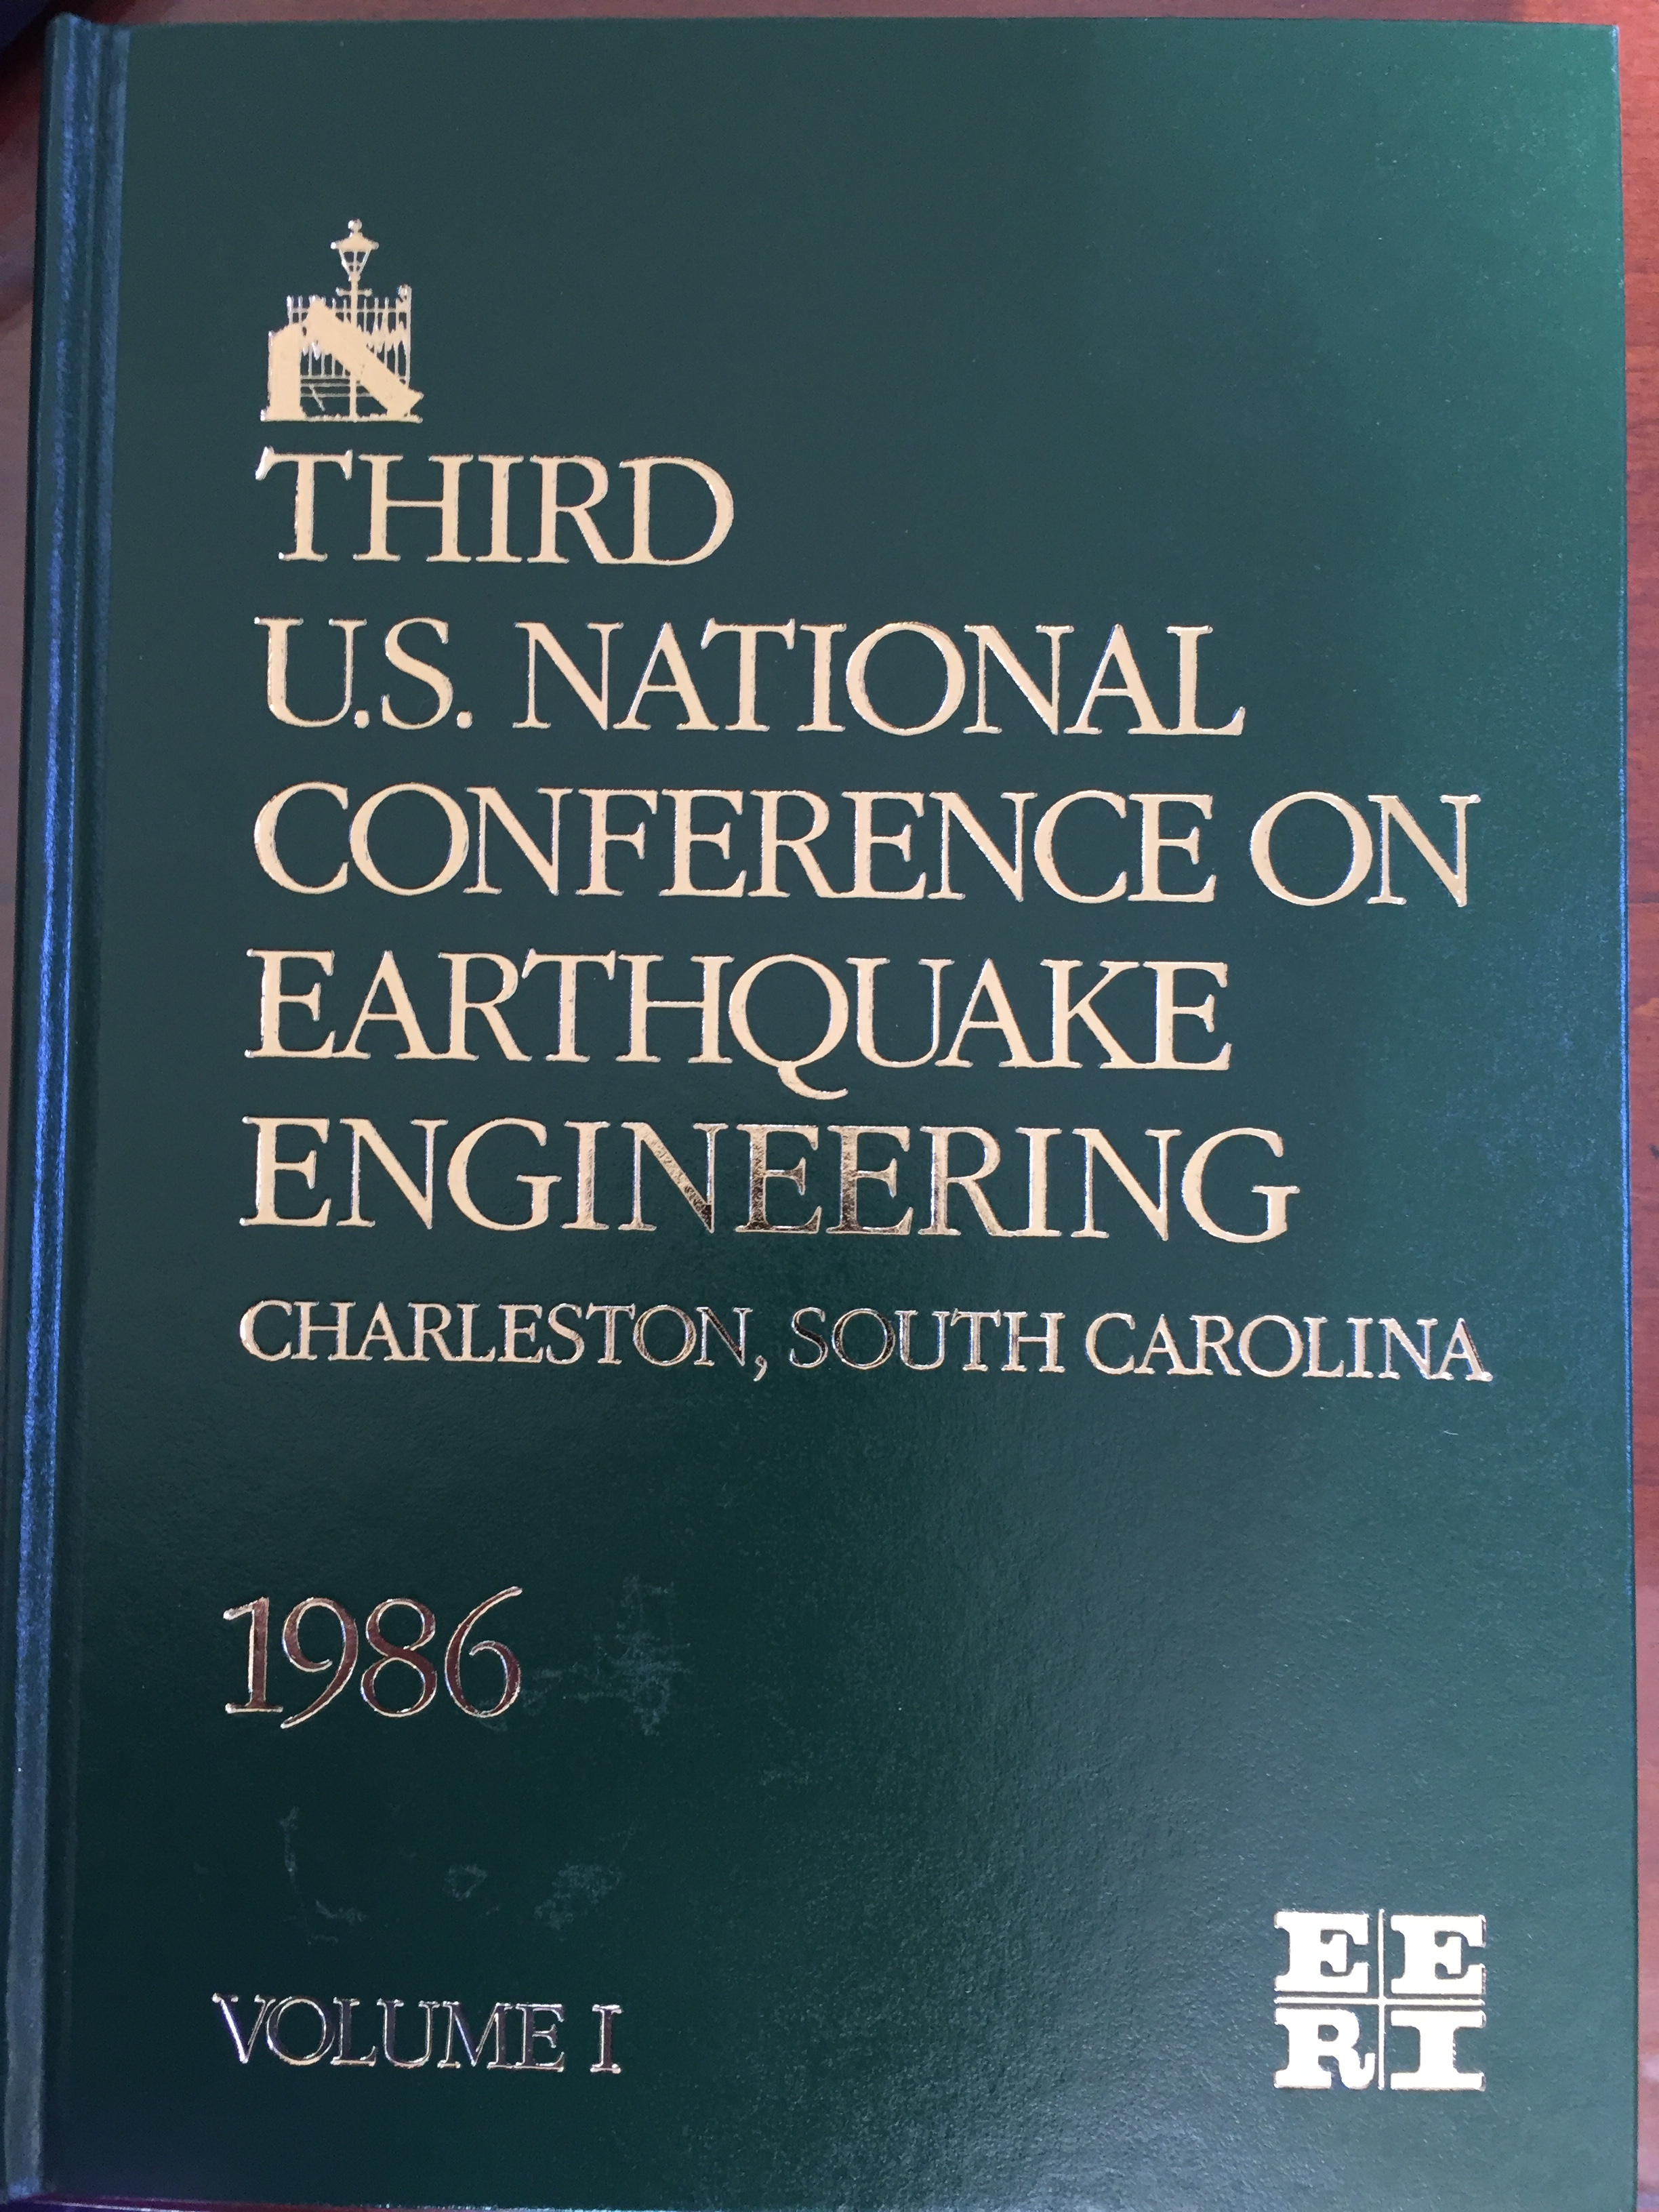 Image for Third U.S. National Conference on Earthquake Engineering, 4 Volume Set